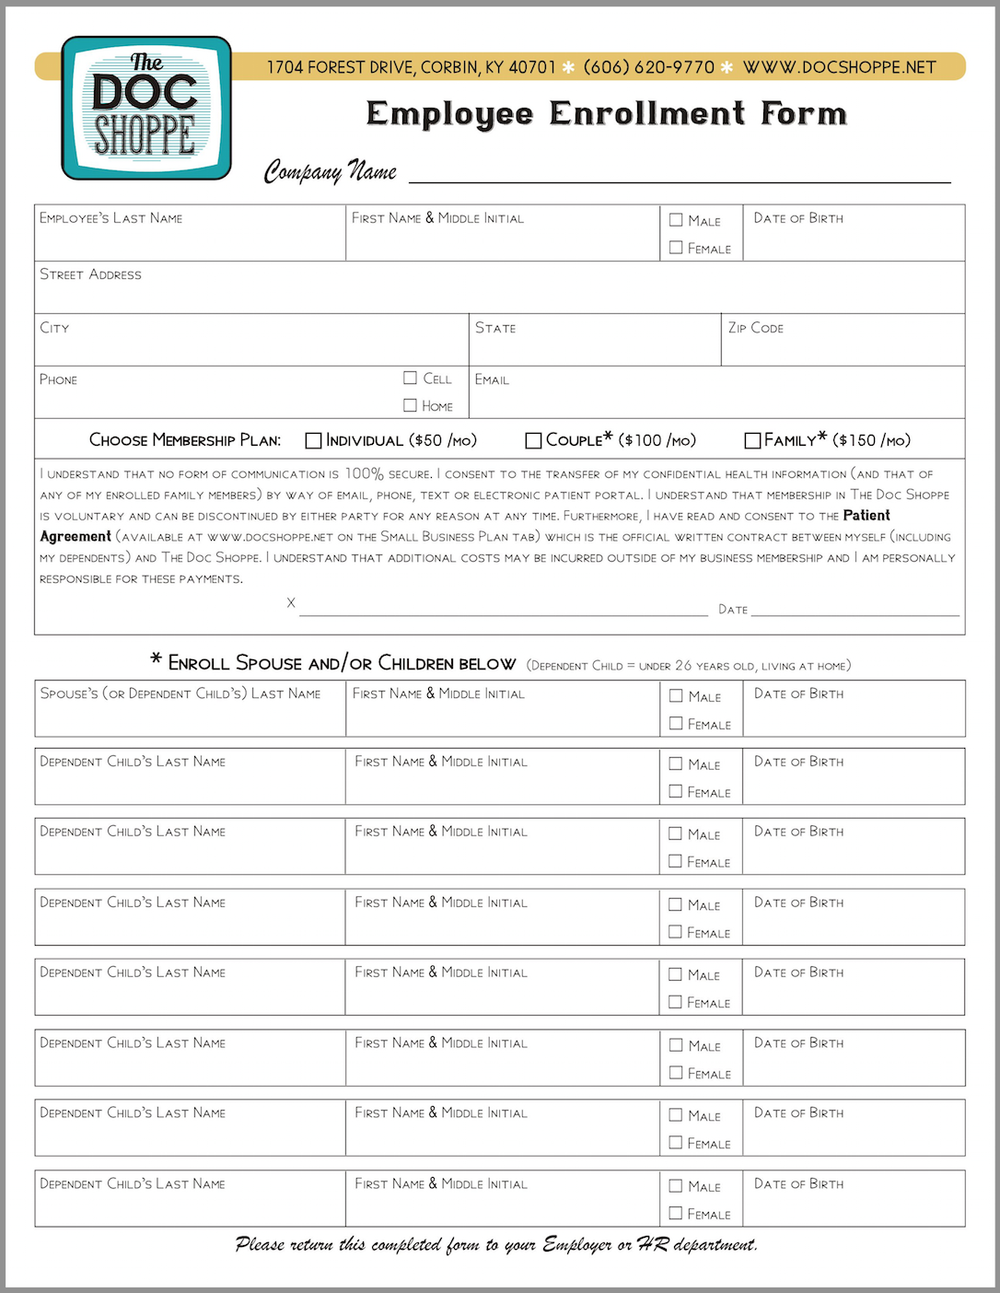 Small Business Join The Doc Shoppe – Enrollment Form